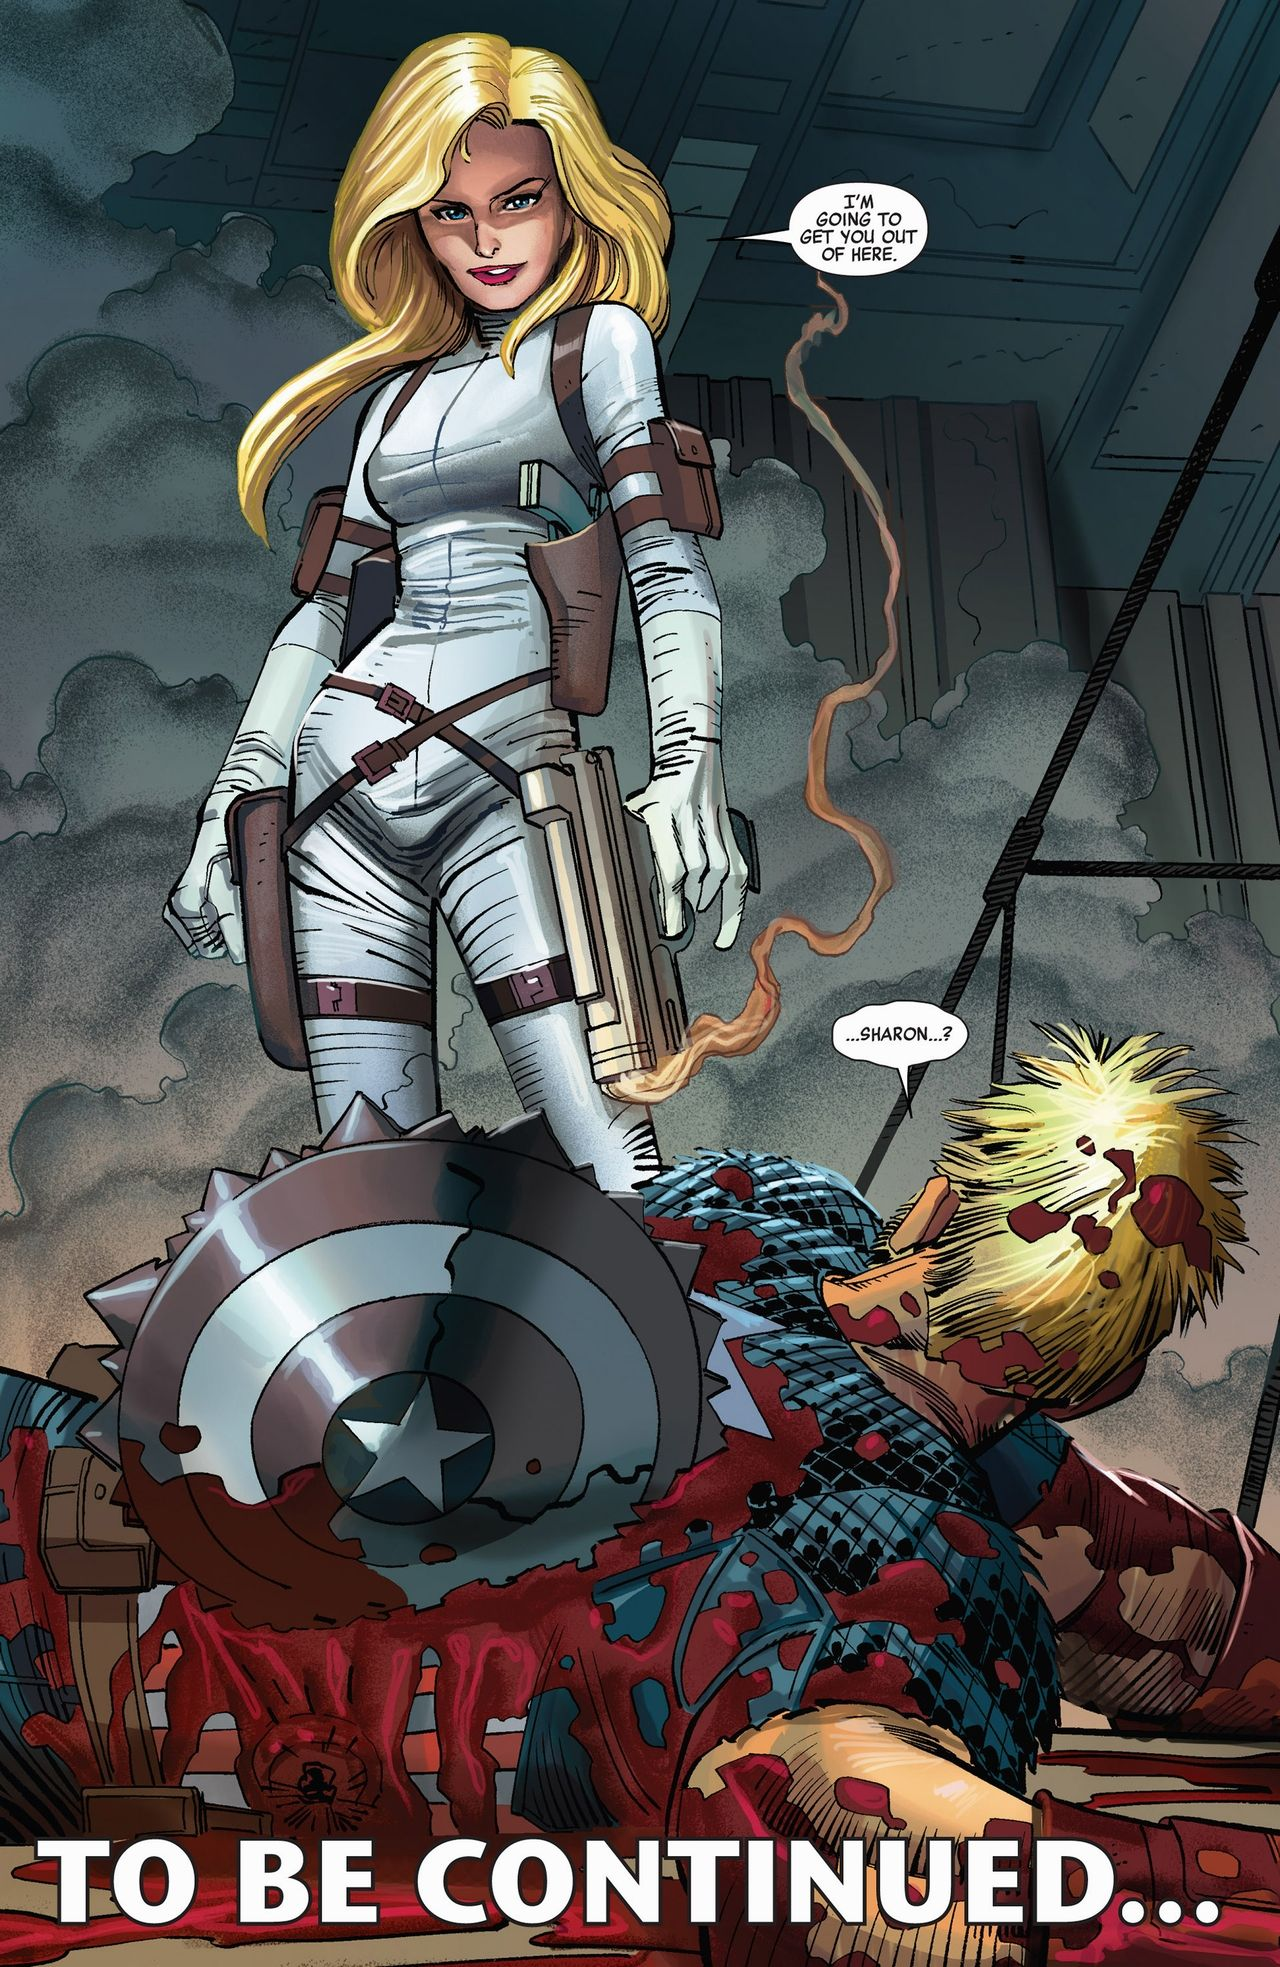 Sharon Carter screenshots, images and pictures - Comic Vine